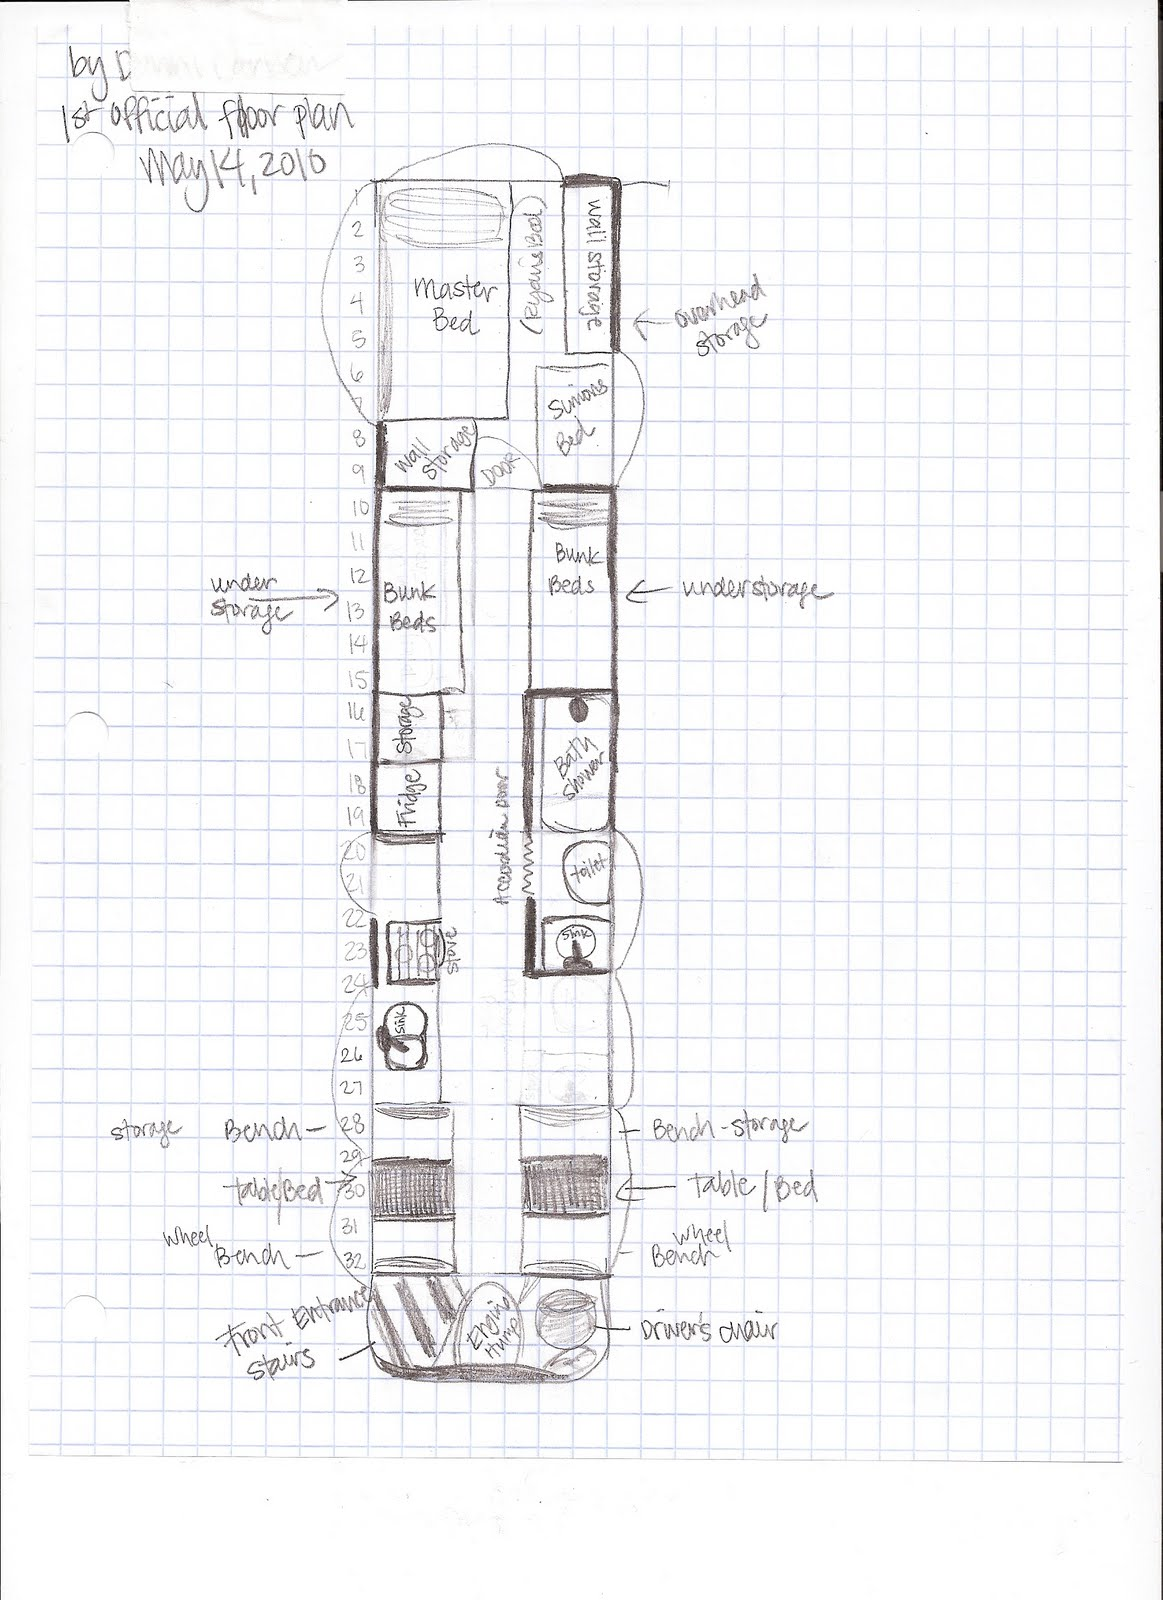 Bus Conversion Floor Plans Find House Plans